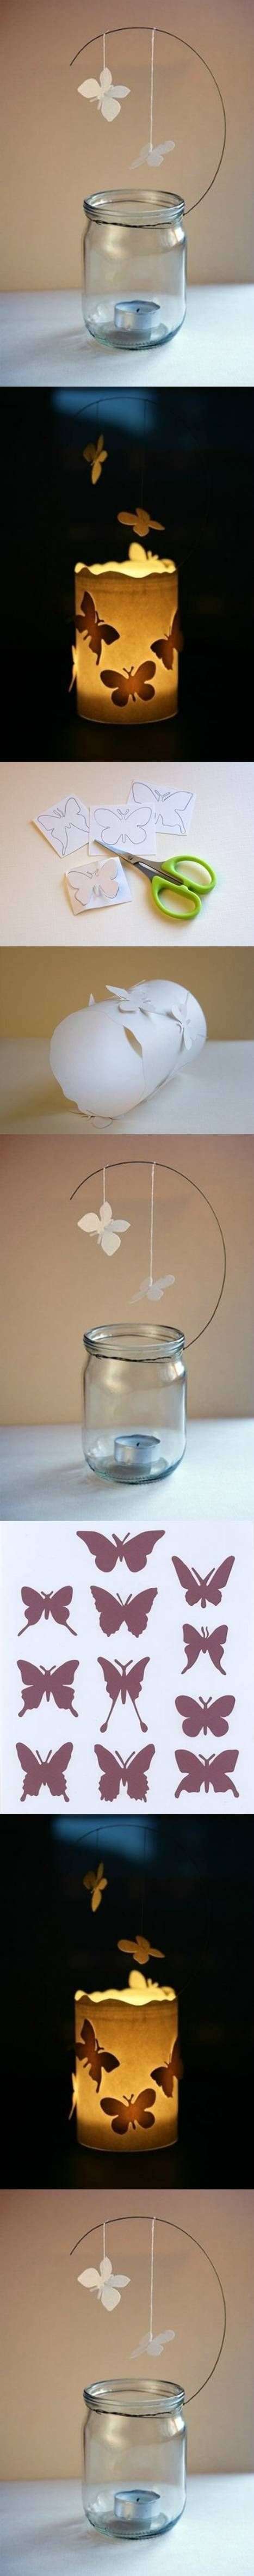 DIY Butterfly Candle Decor Ideas - deliziosa!